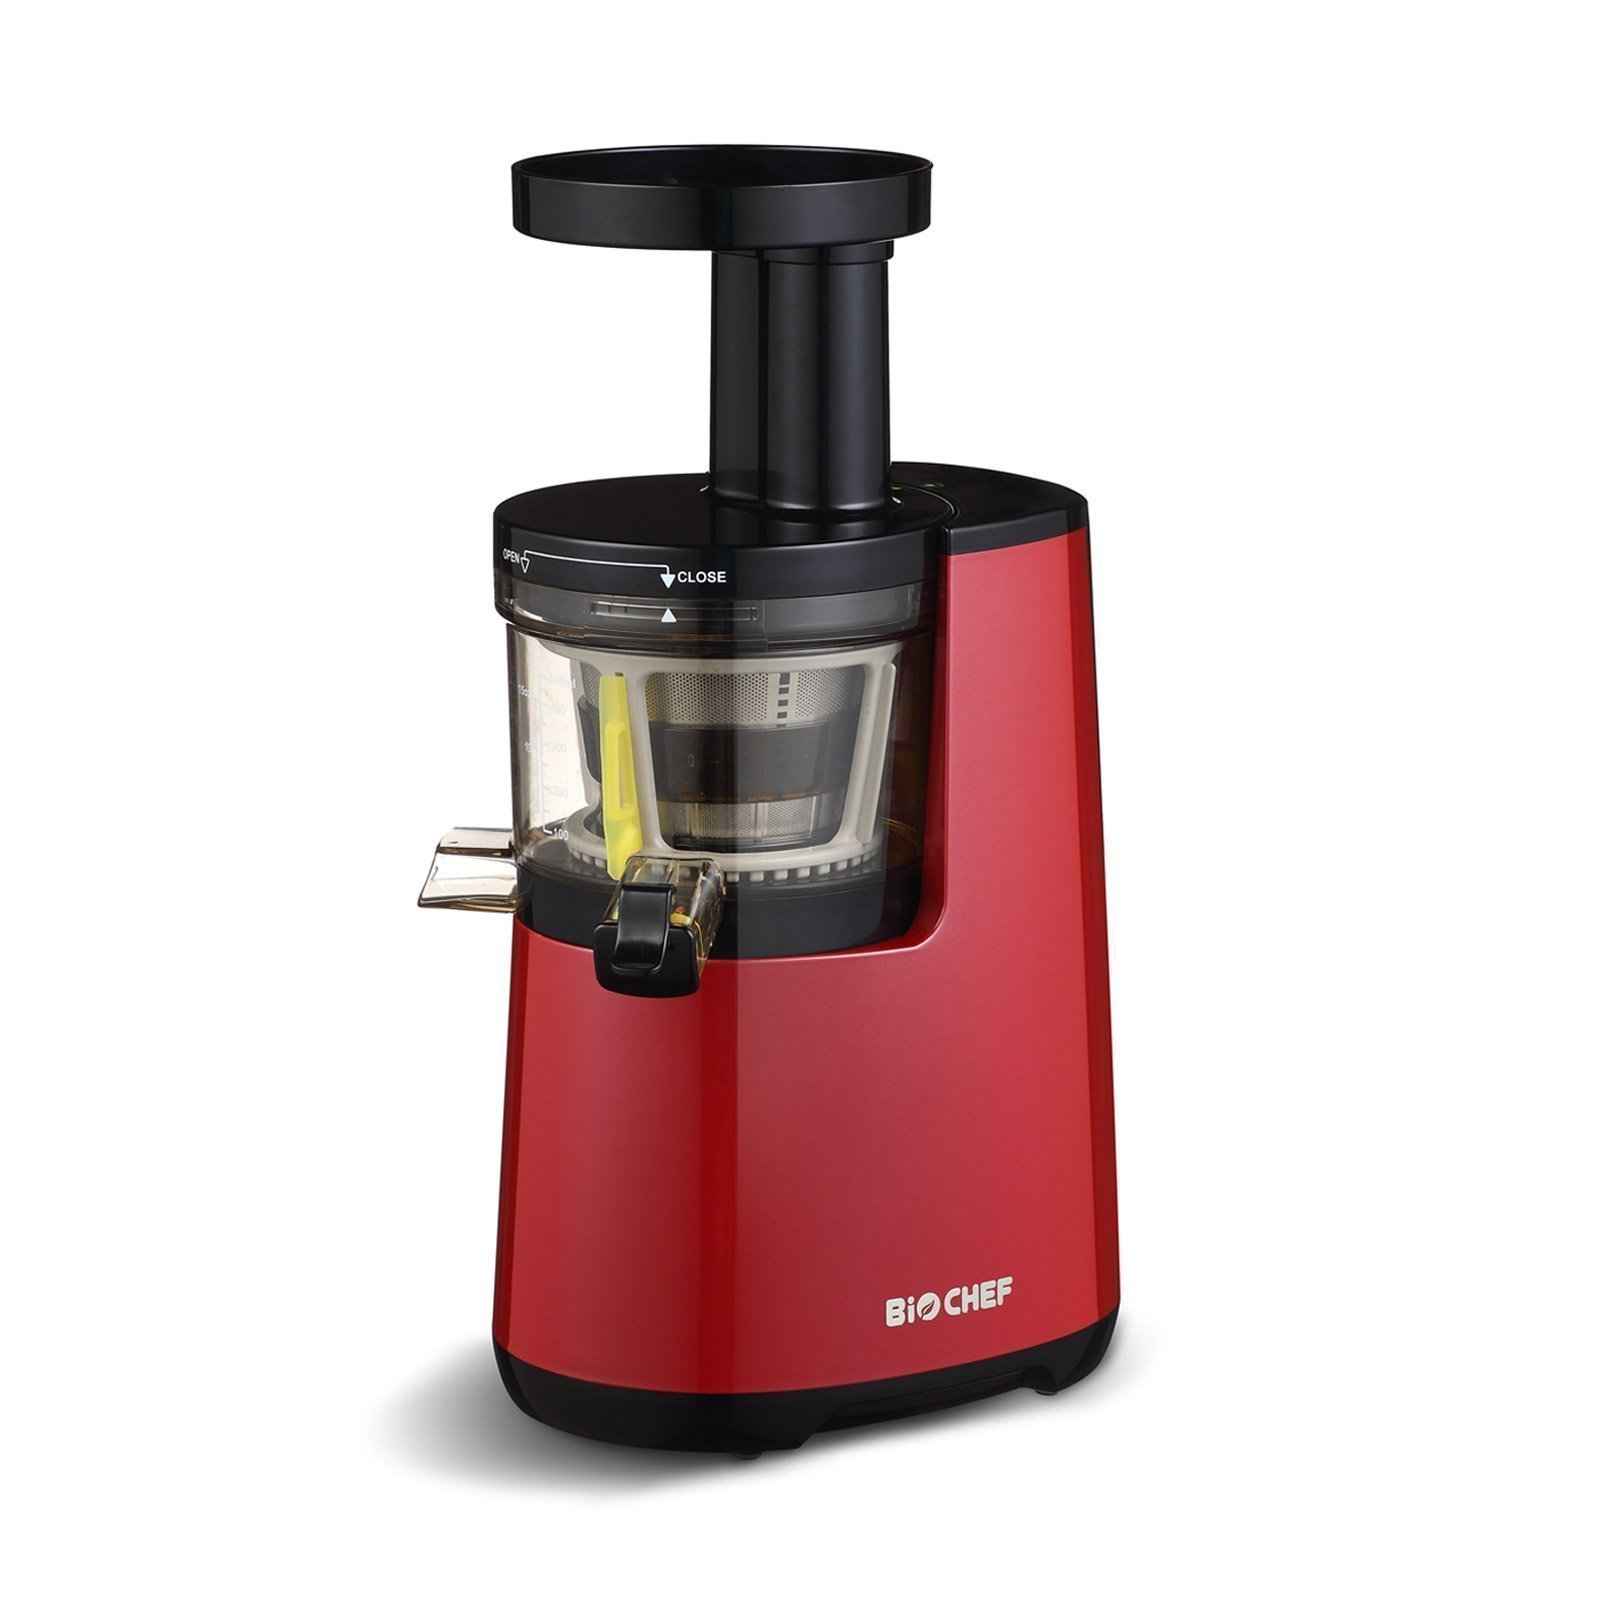 Juice Wizard Slow Juicer : NEW BioChef Atlas Cold Press Slow Fruit Juicer - Red eBay